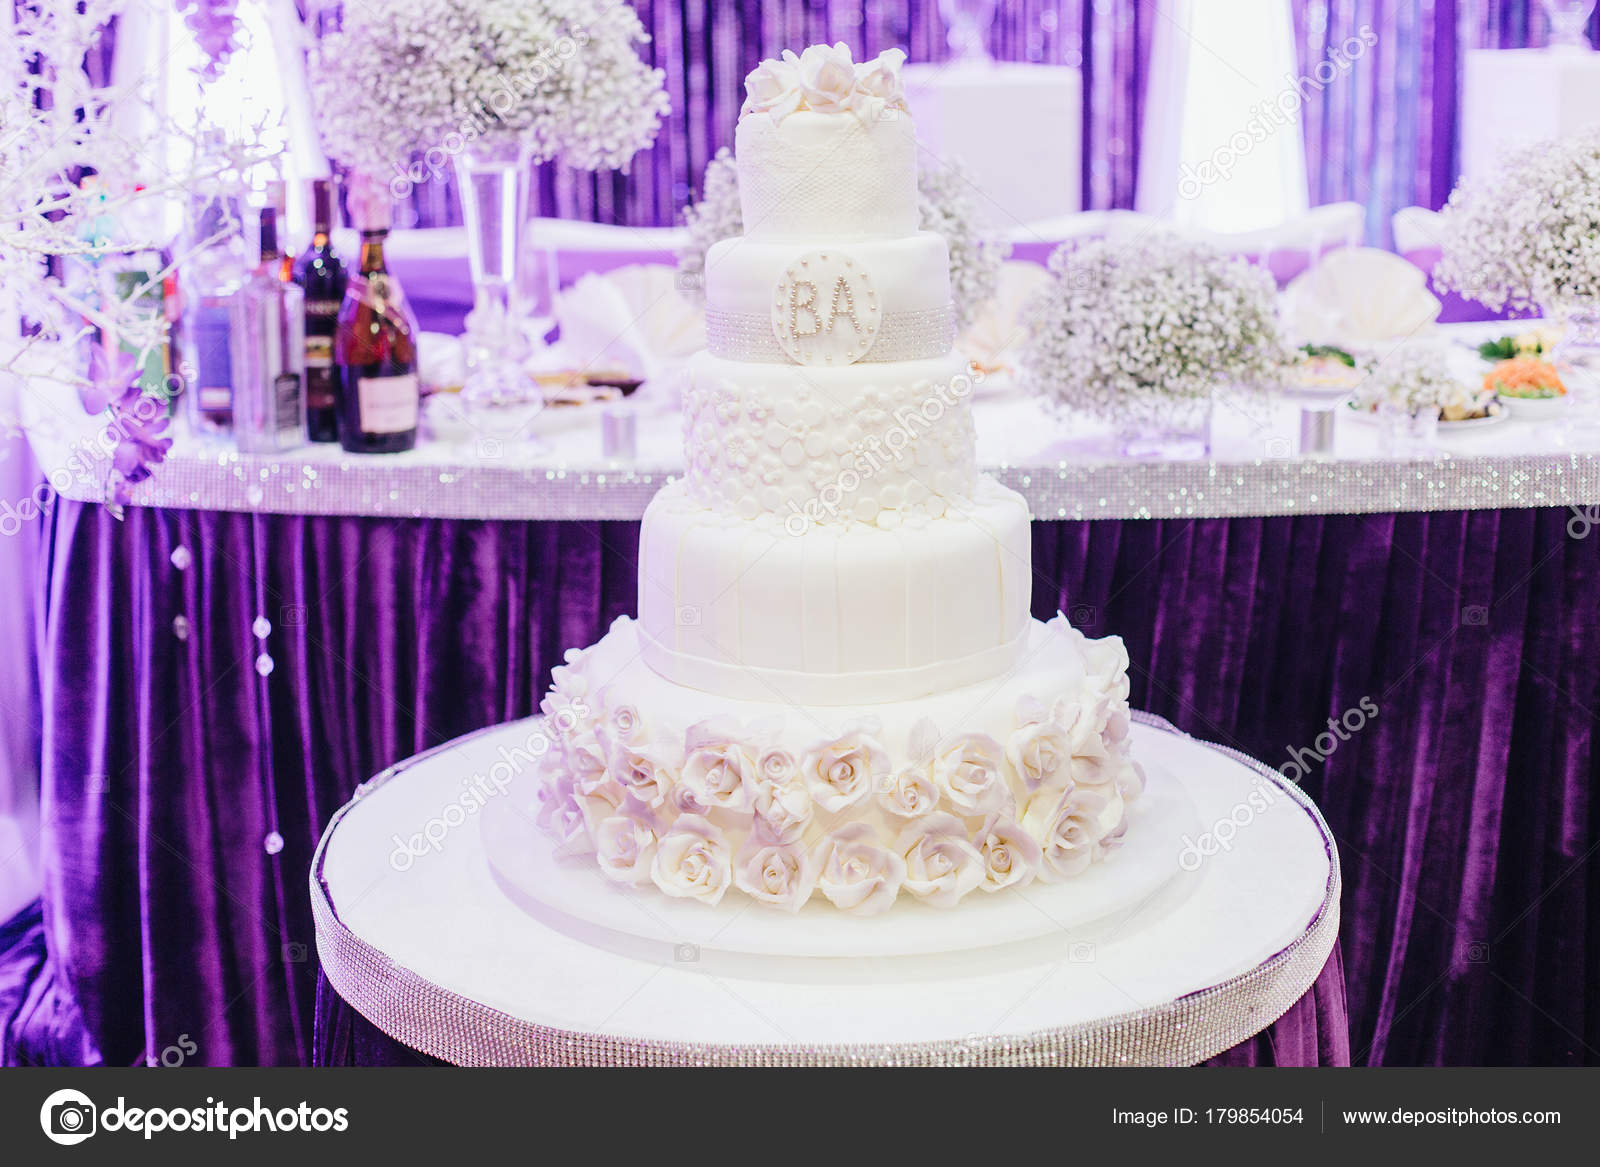 Most Beautiful Delicious Cake Homemade Pastries Wedding Birthday Hen ...